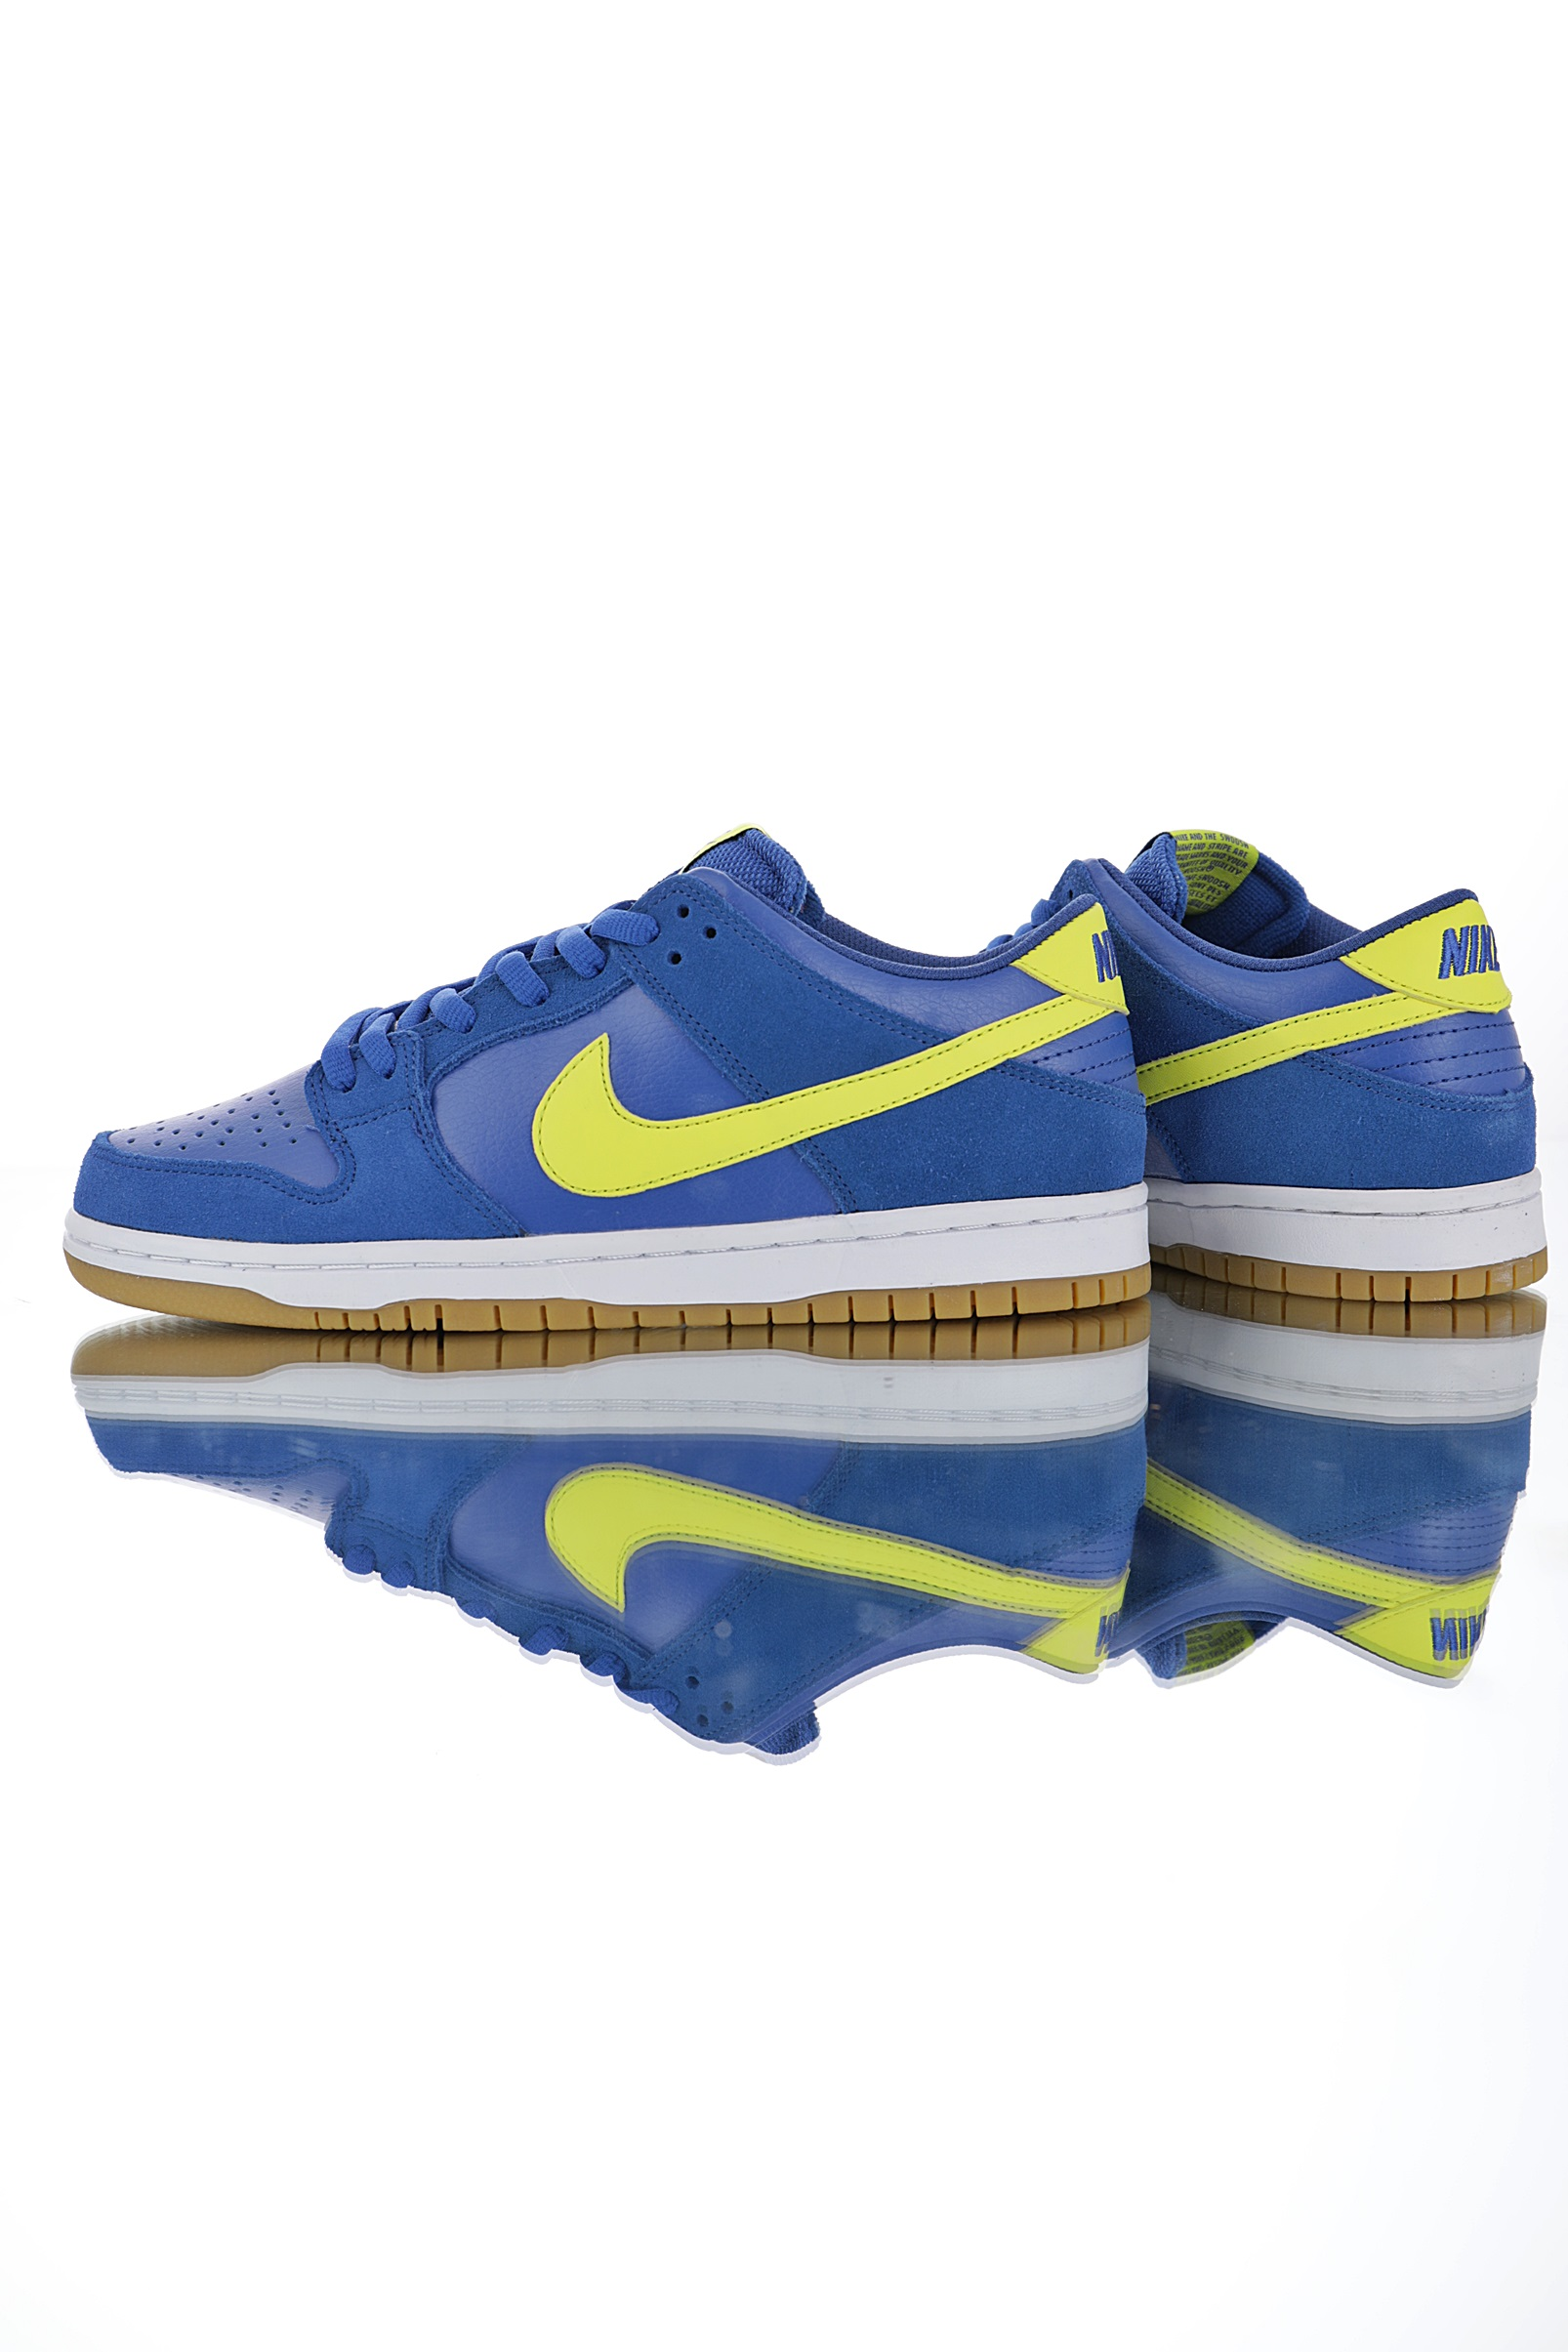 Nike SB Dunk Low Boca Juniors Blue Yellow side